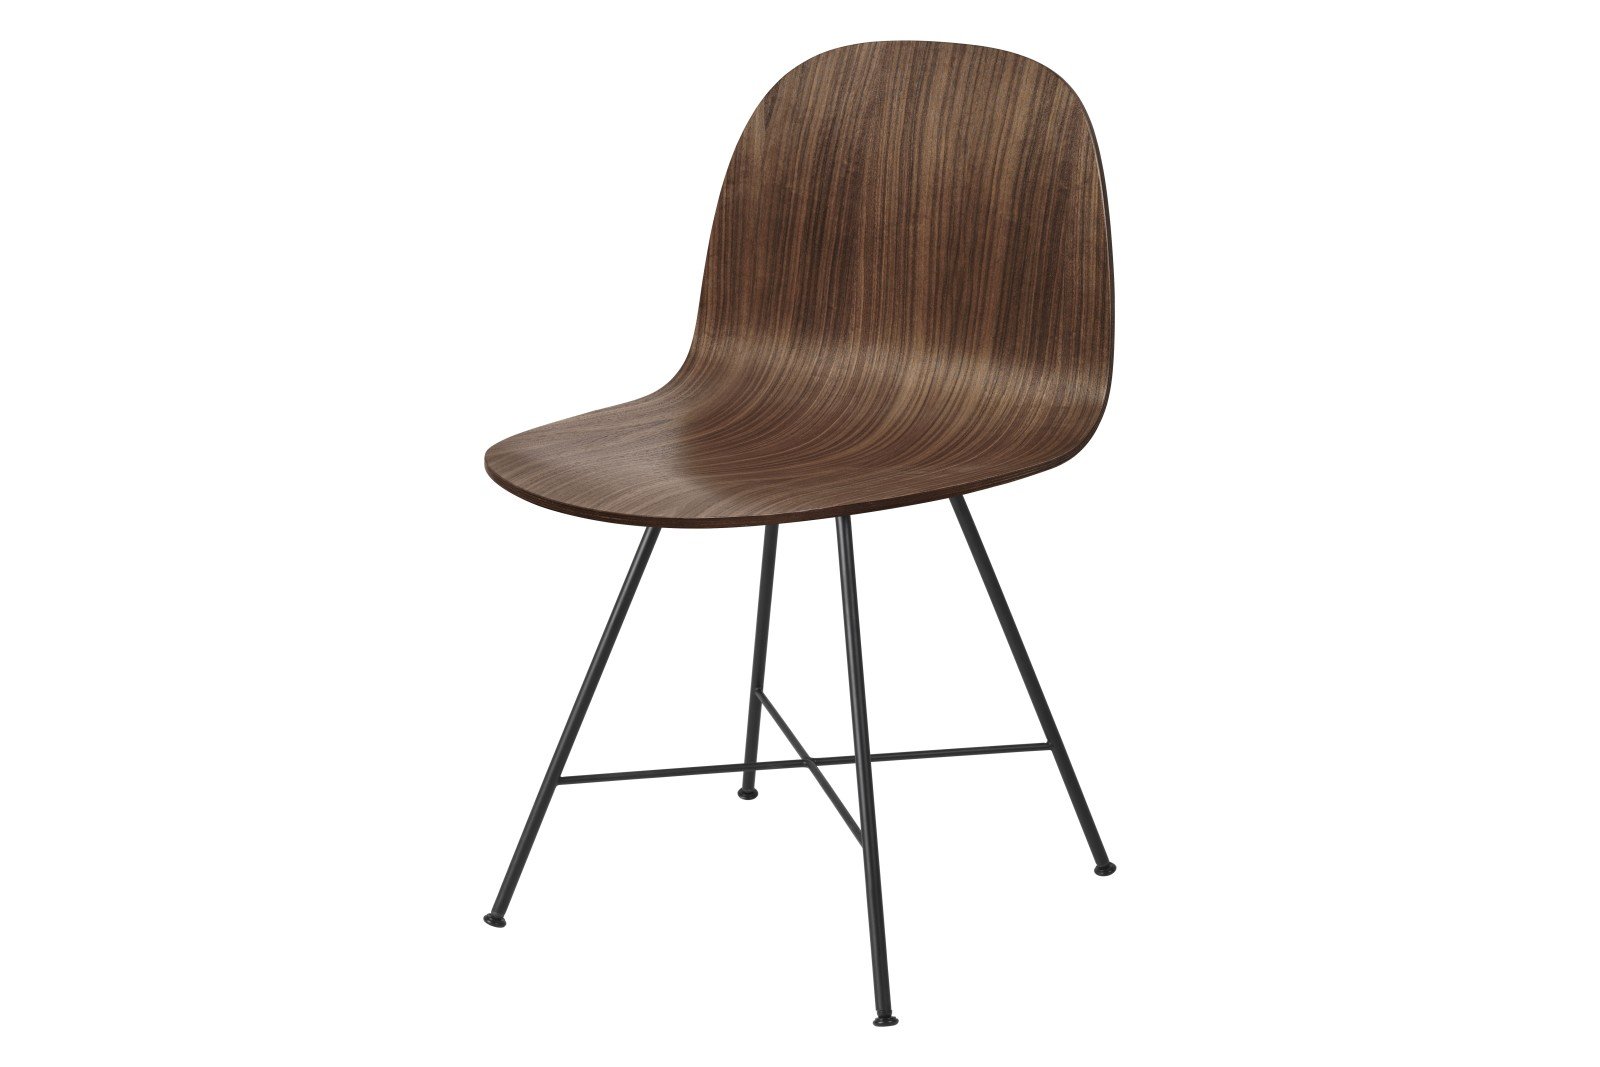 2D Centre-base Dining Chair - Unupholstered Gubi Wood American Walnut